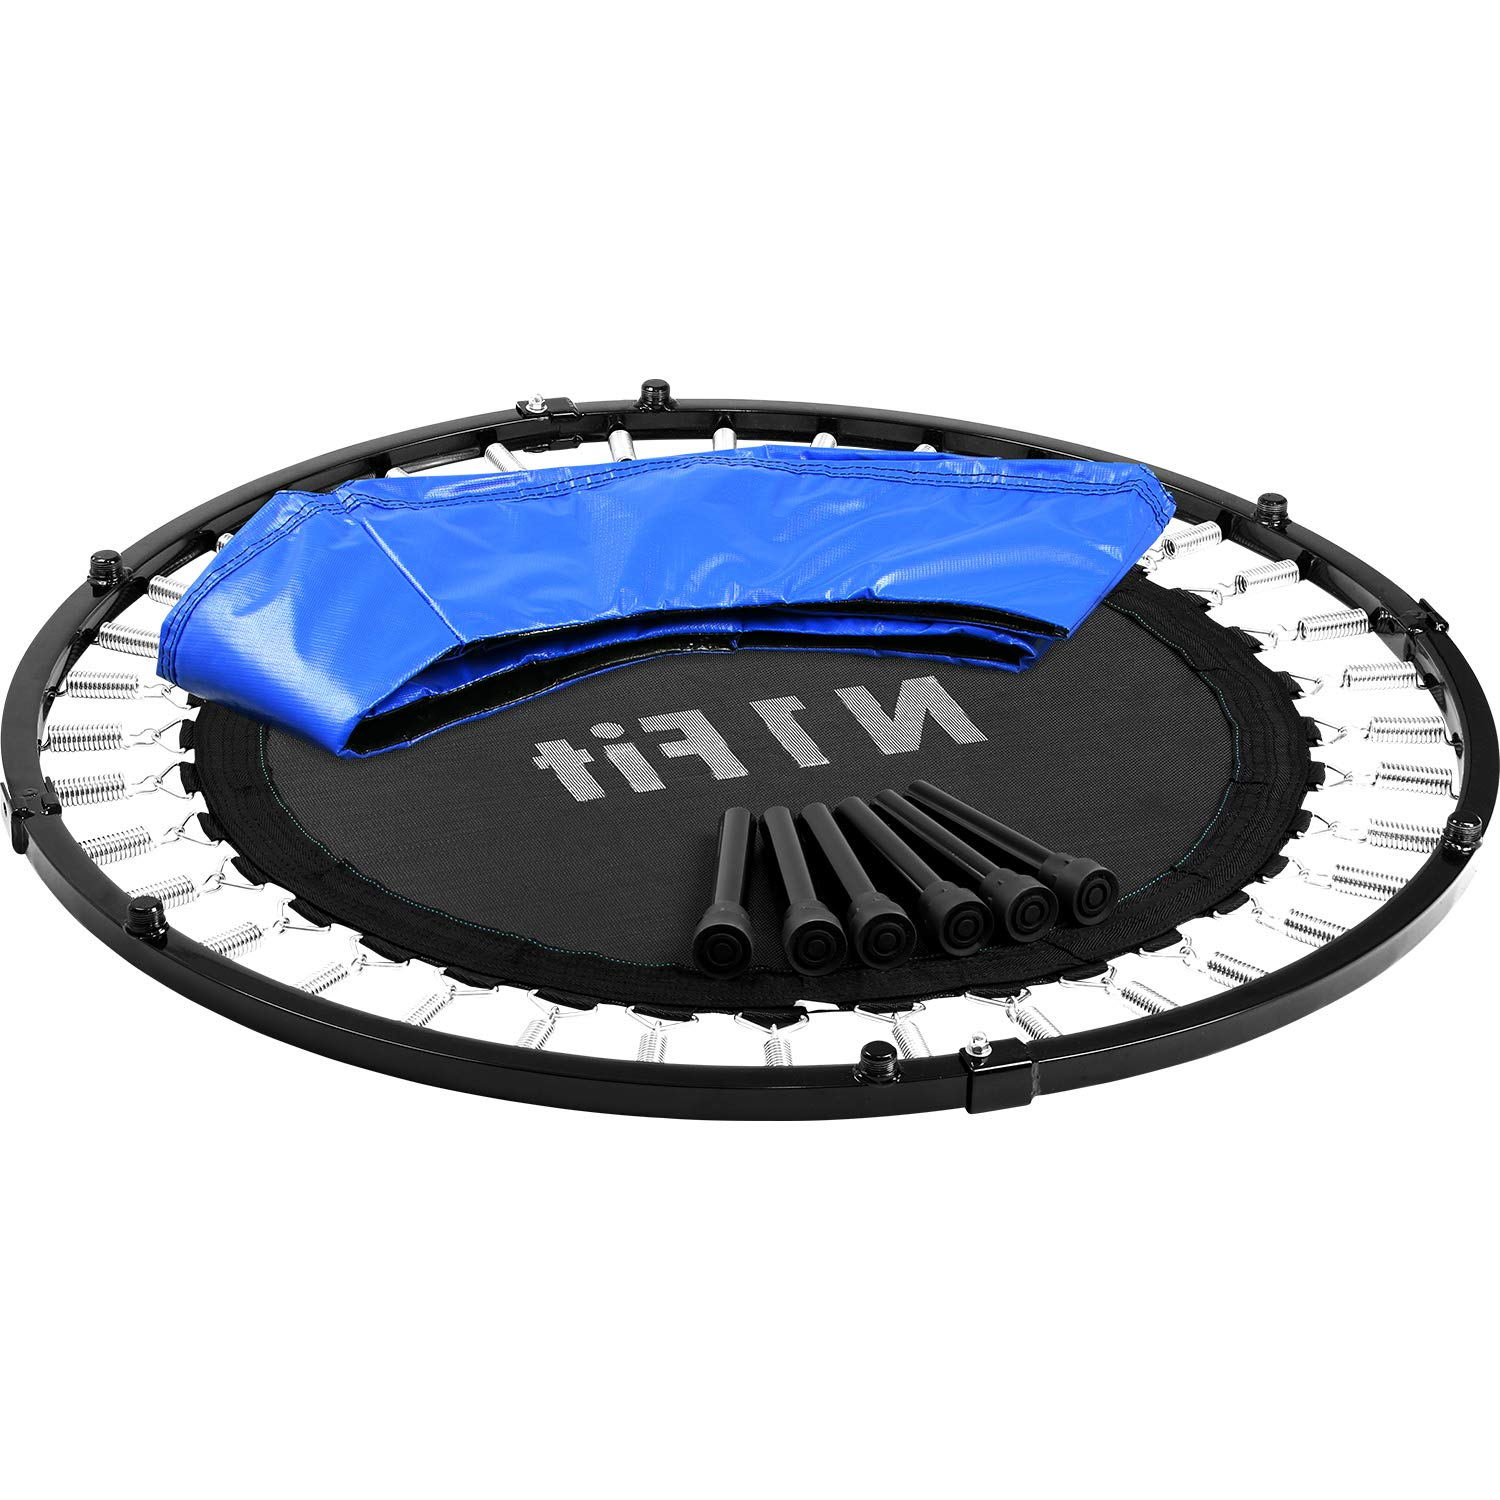 N1Fit Mini Trampoline for Adults - Exercise Trampoline, Mini Trampolines, Personal Trampoline, Trampoline Small Indoor, Rebounding Tiny Trampoline with Springs System for Home Cardio Workouts 40'' by N1Fit (Image #7)